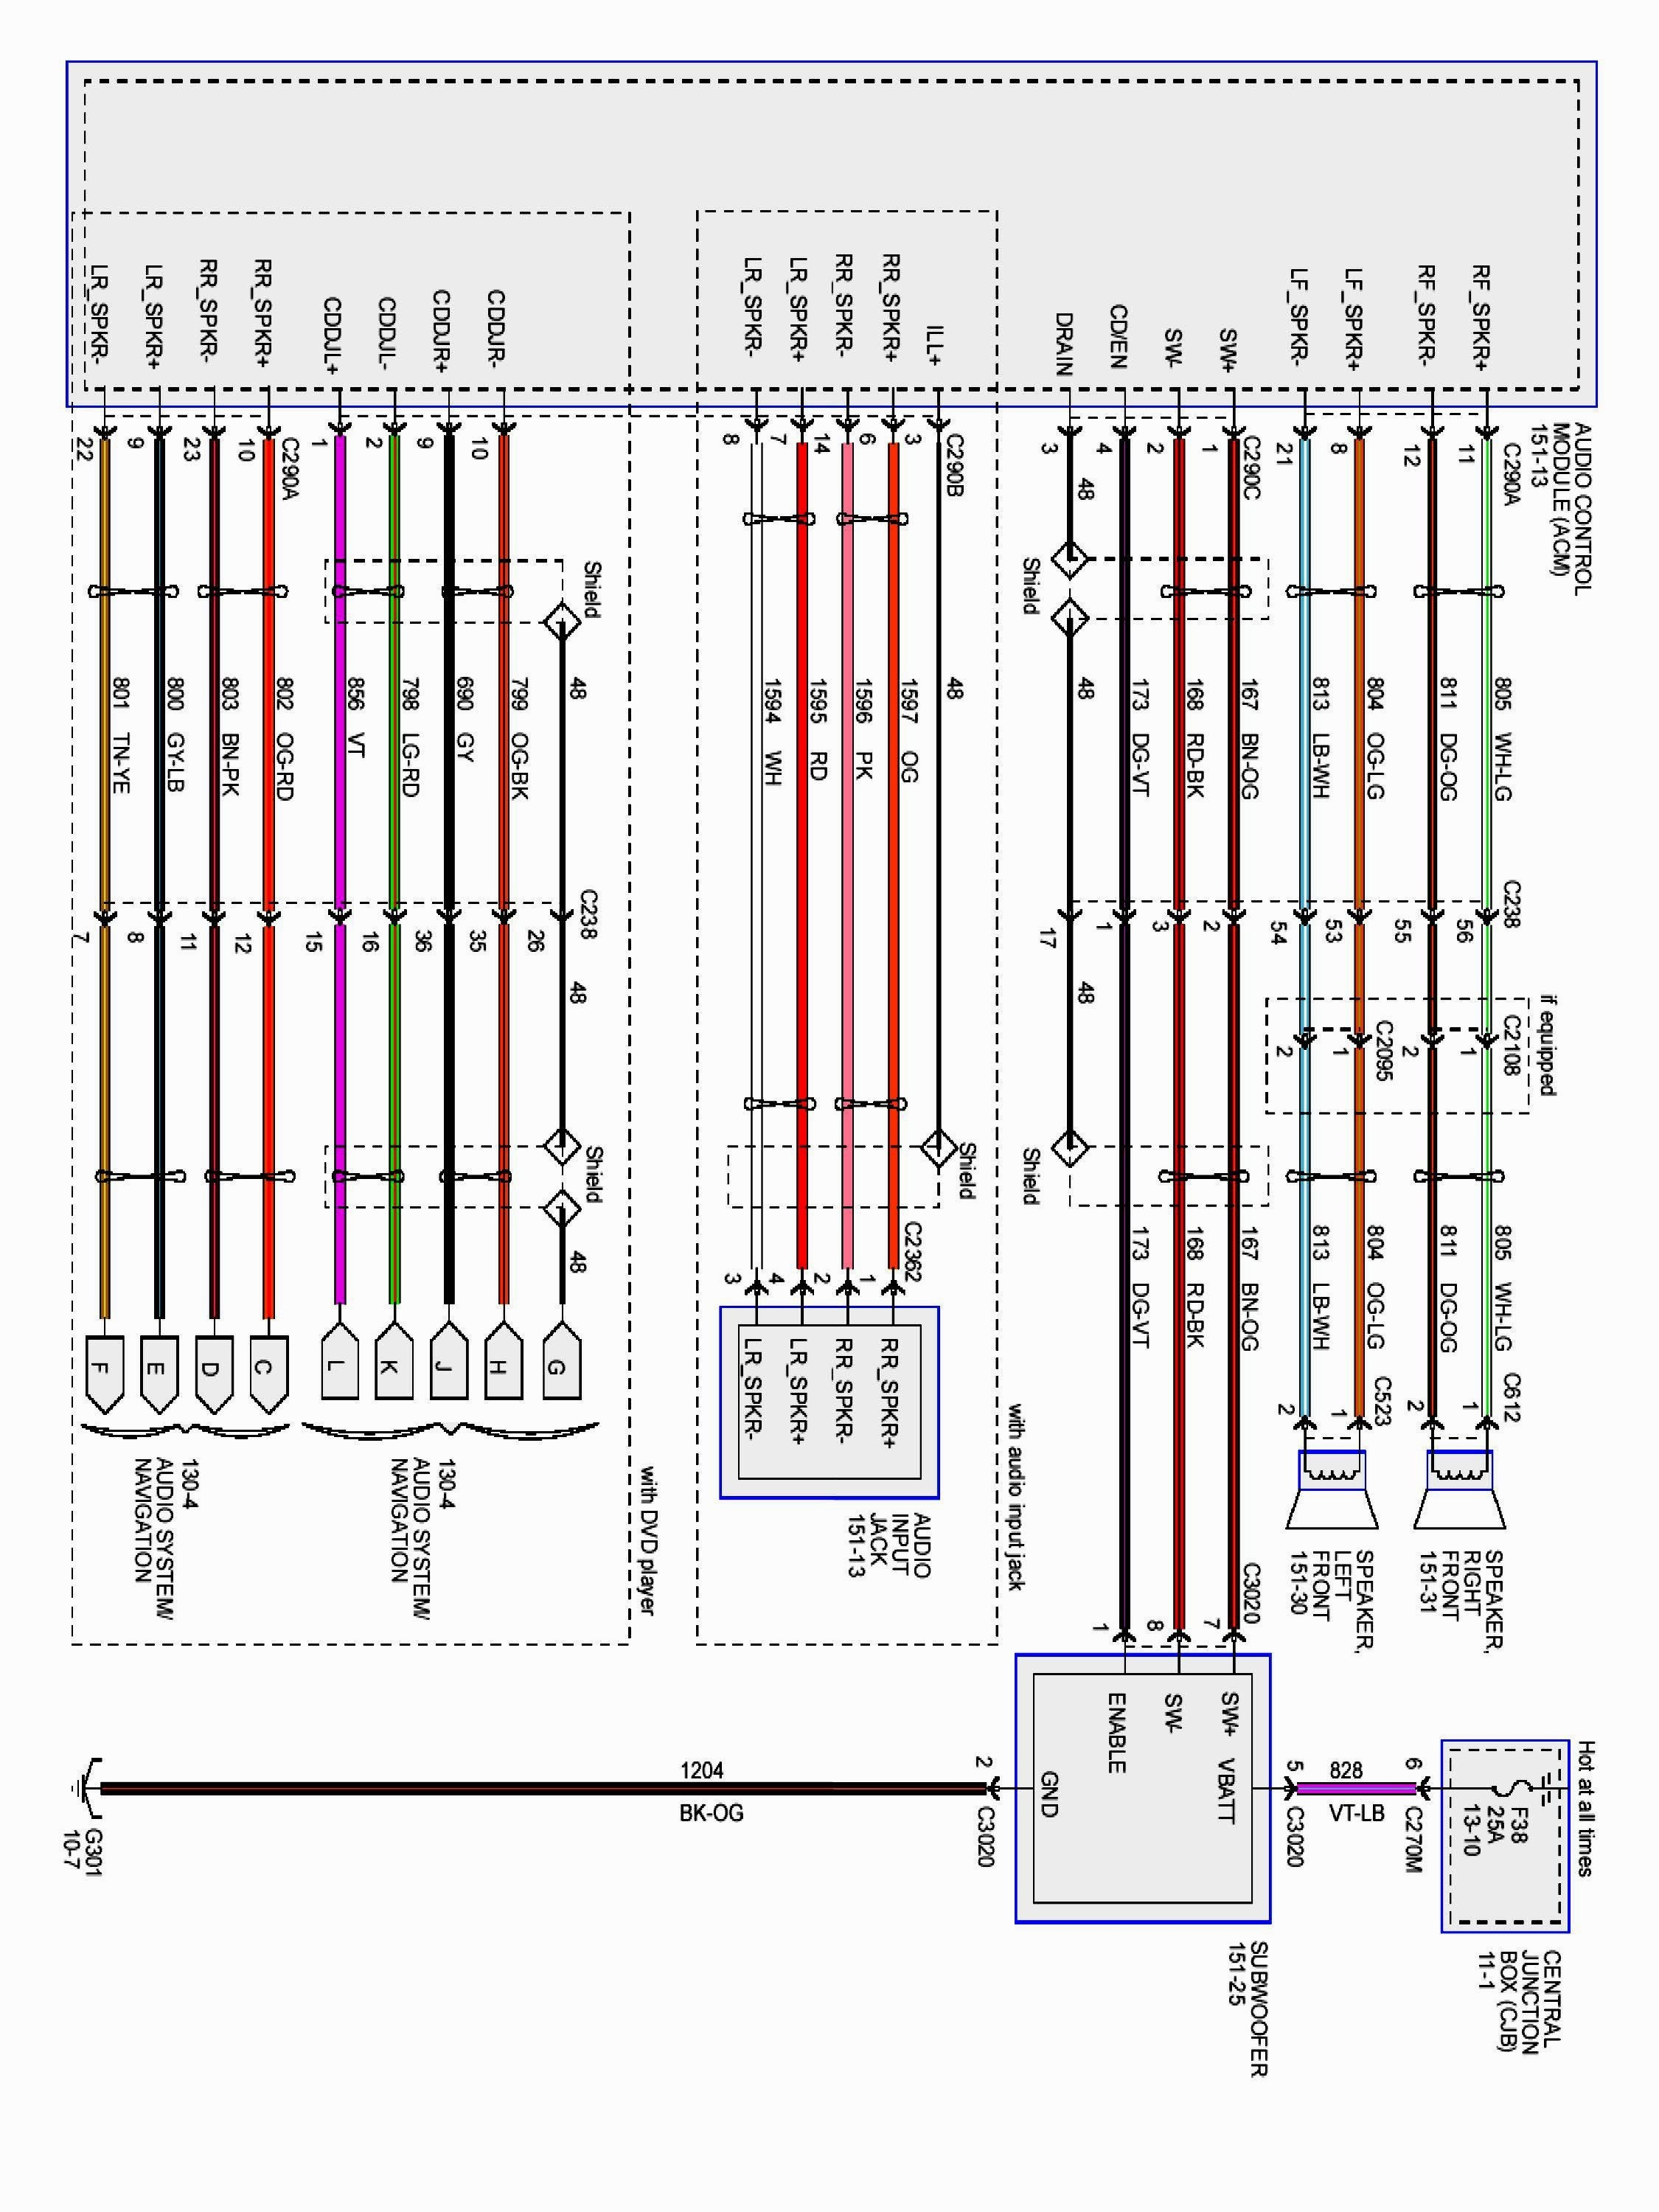 WRG-1669] For Sirius Radio Wiring Diagram